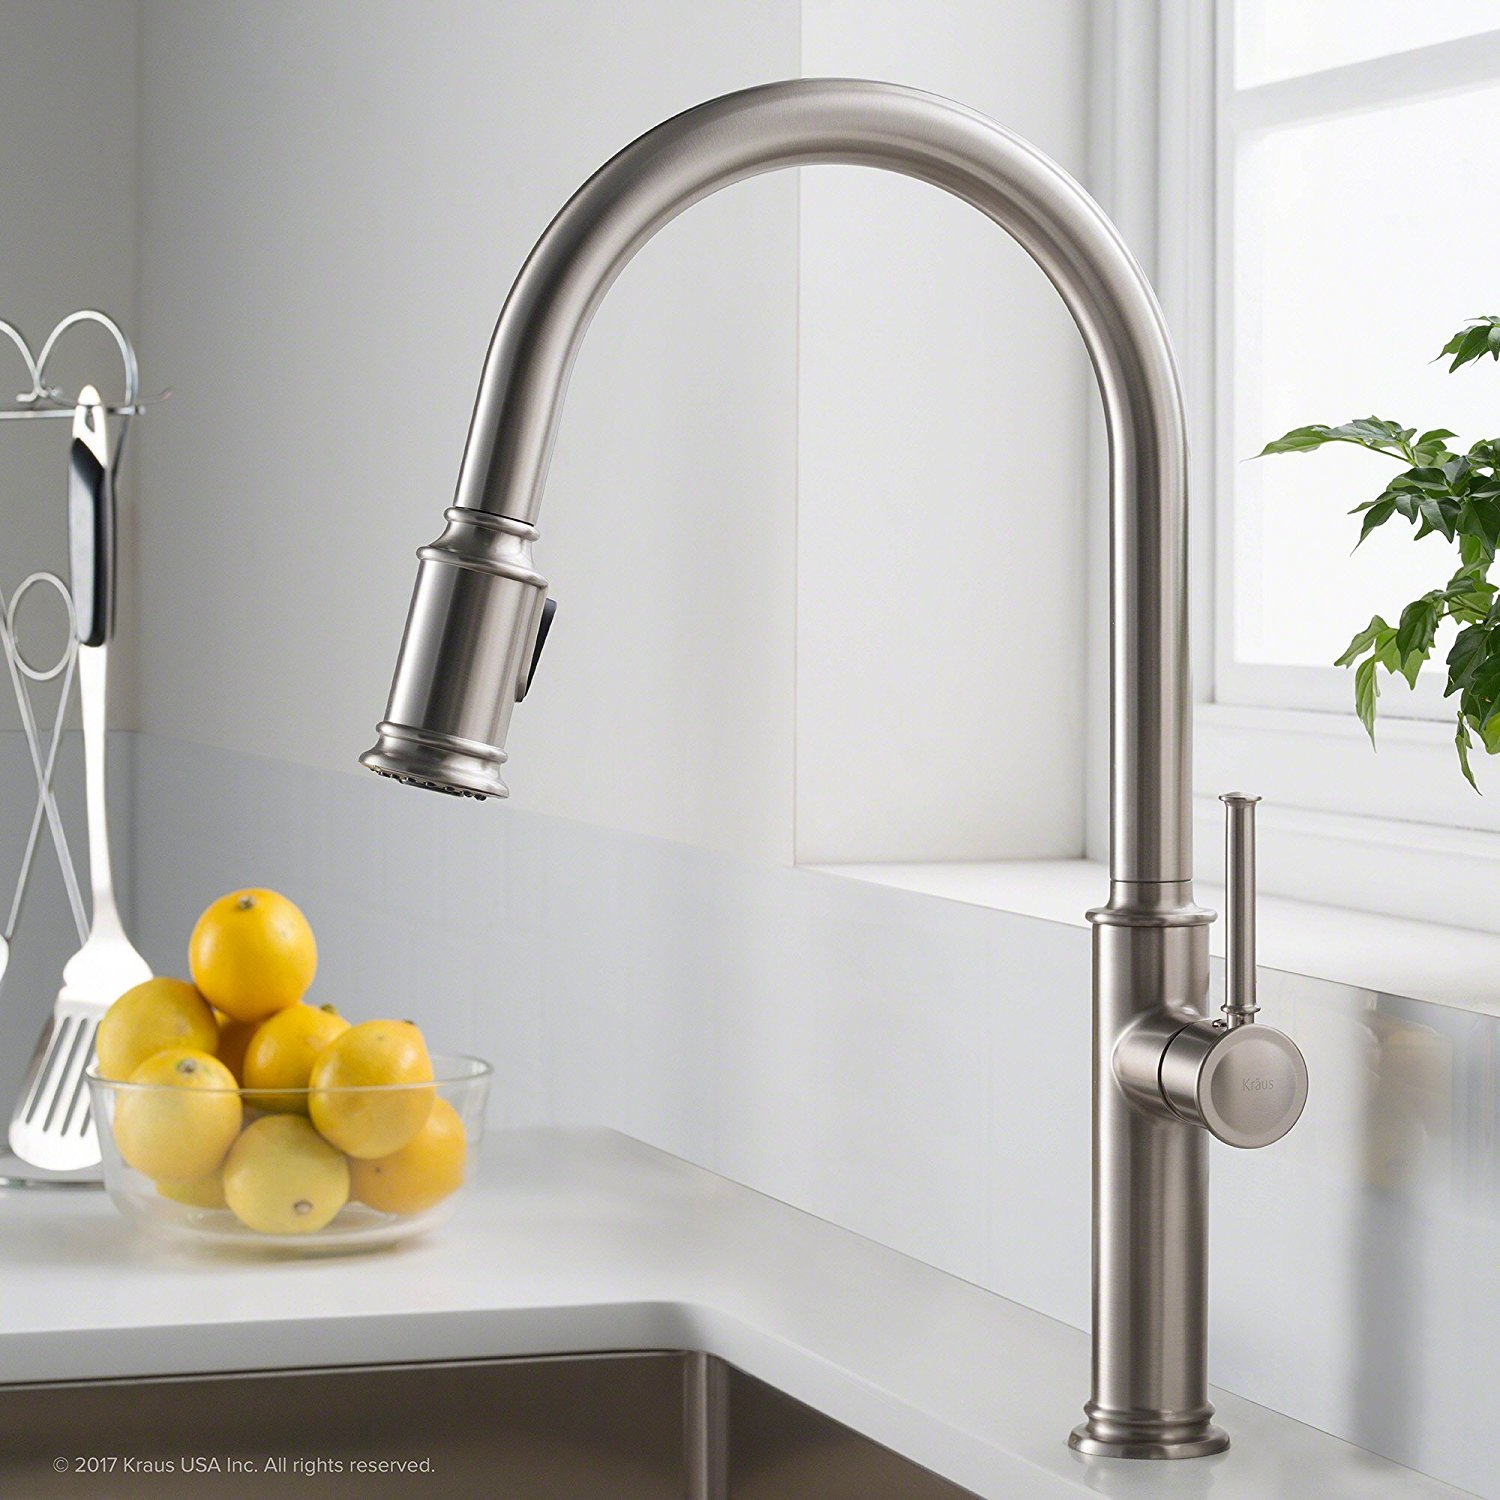 Kraus KPF-1680SFS Sellette Kitchen Faucet, 17.63, Spot Free Stainless Steel